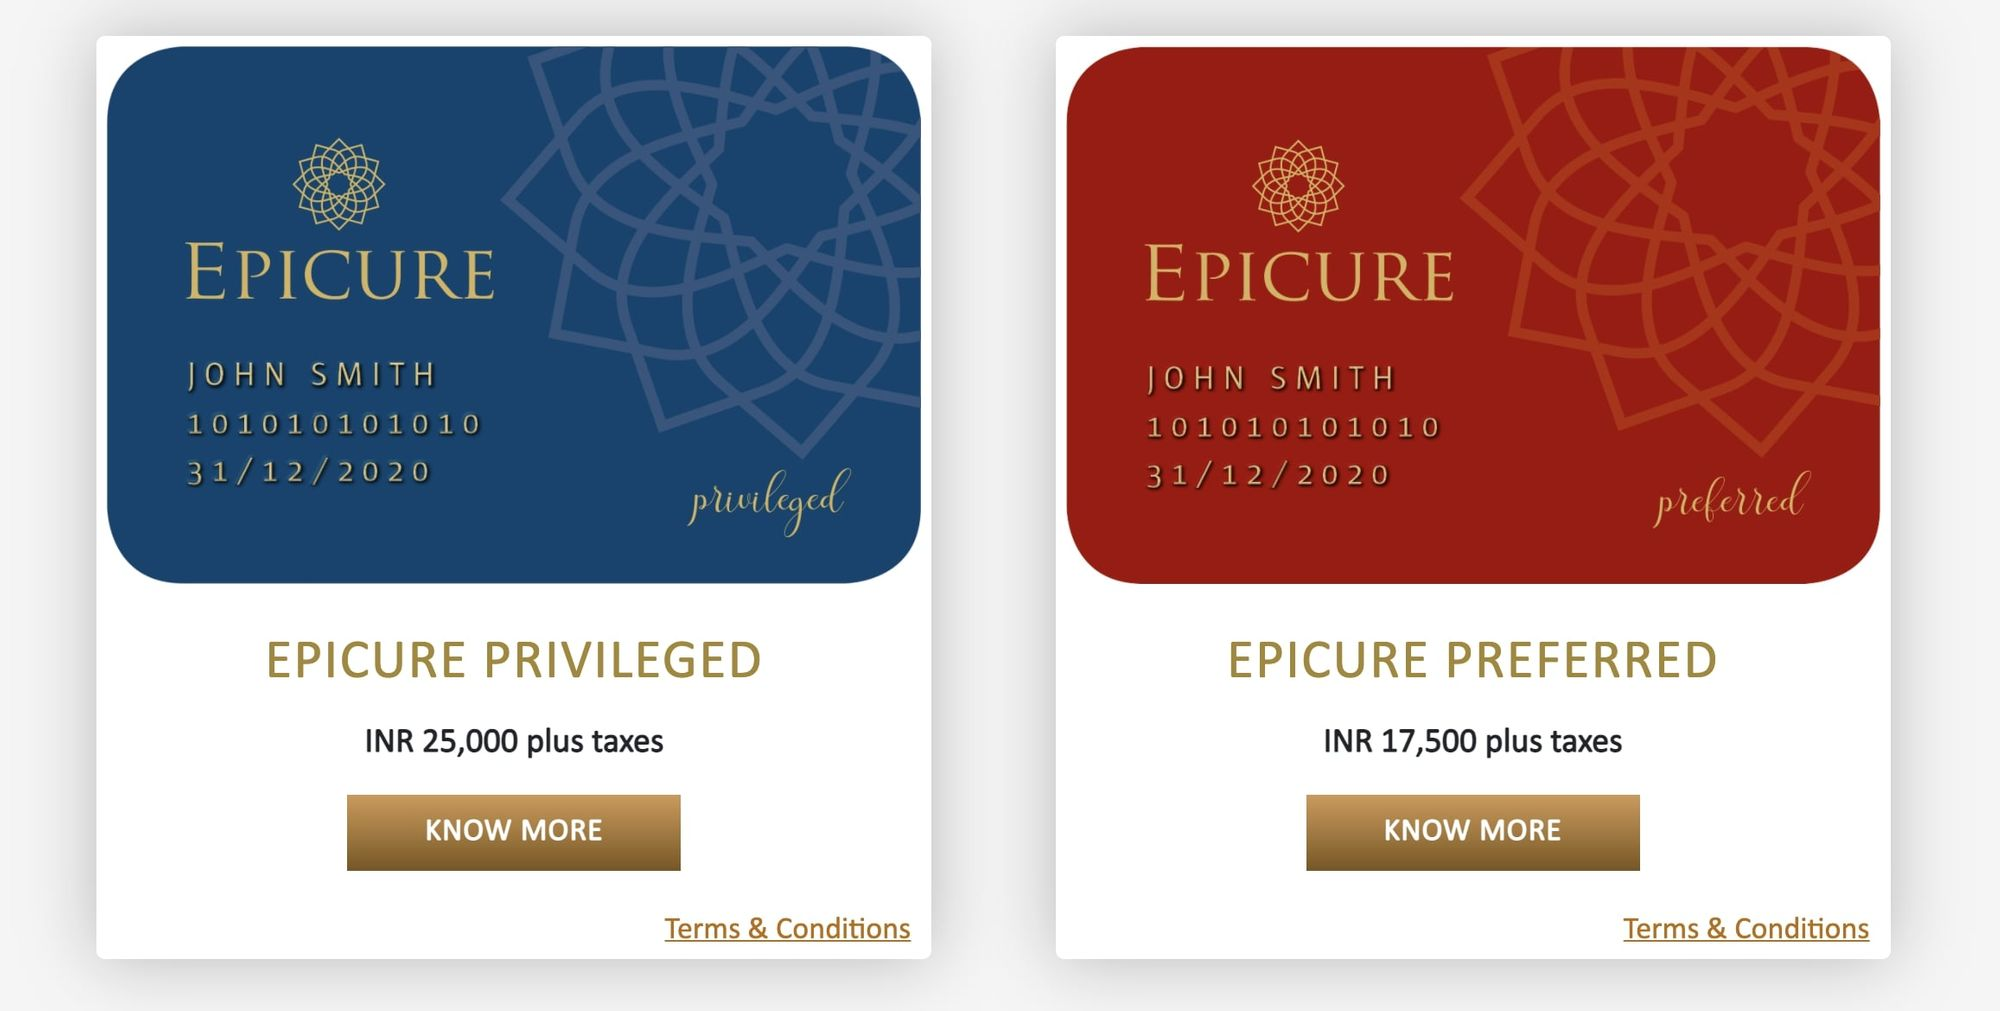 Taj Epicure Privileged and Preferred tiers.